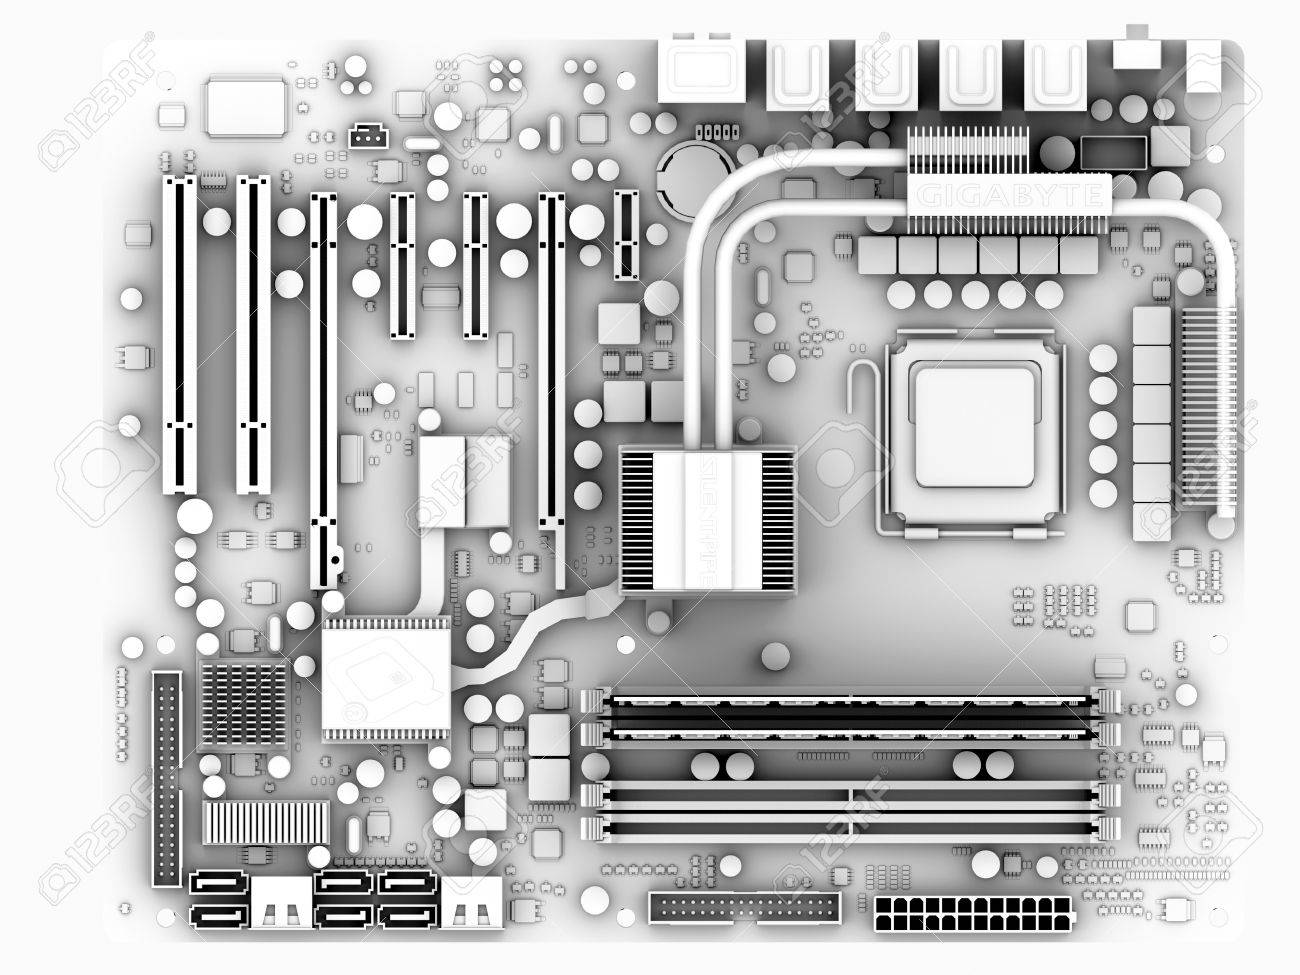 motherboard computer artwork of the main circuit board (motherboardmotherboard computer artwork of the main circuit board (motherboard) of a personal computer (pc) motherboard components include transistors,diodes,resistors